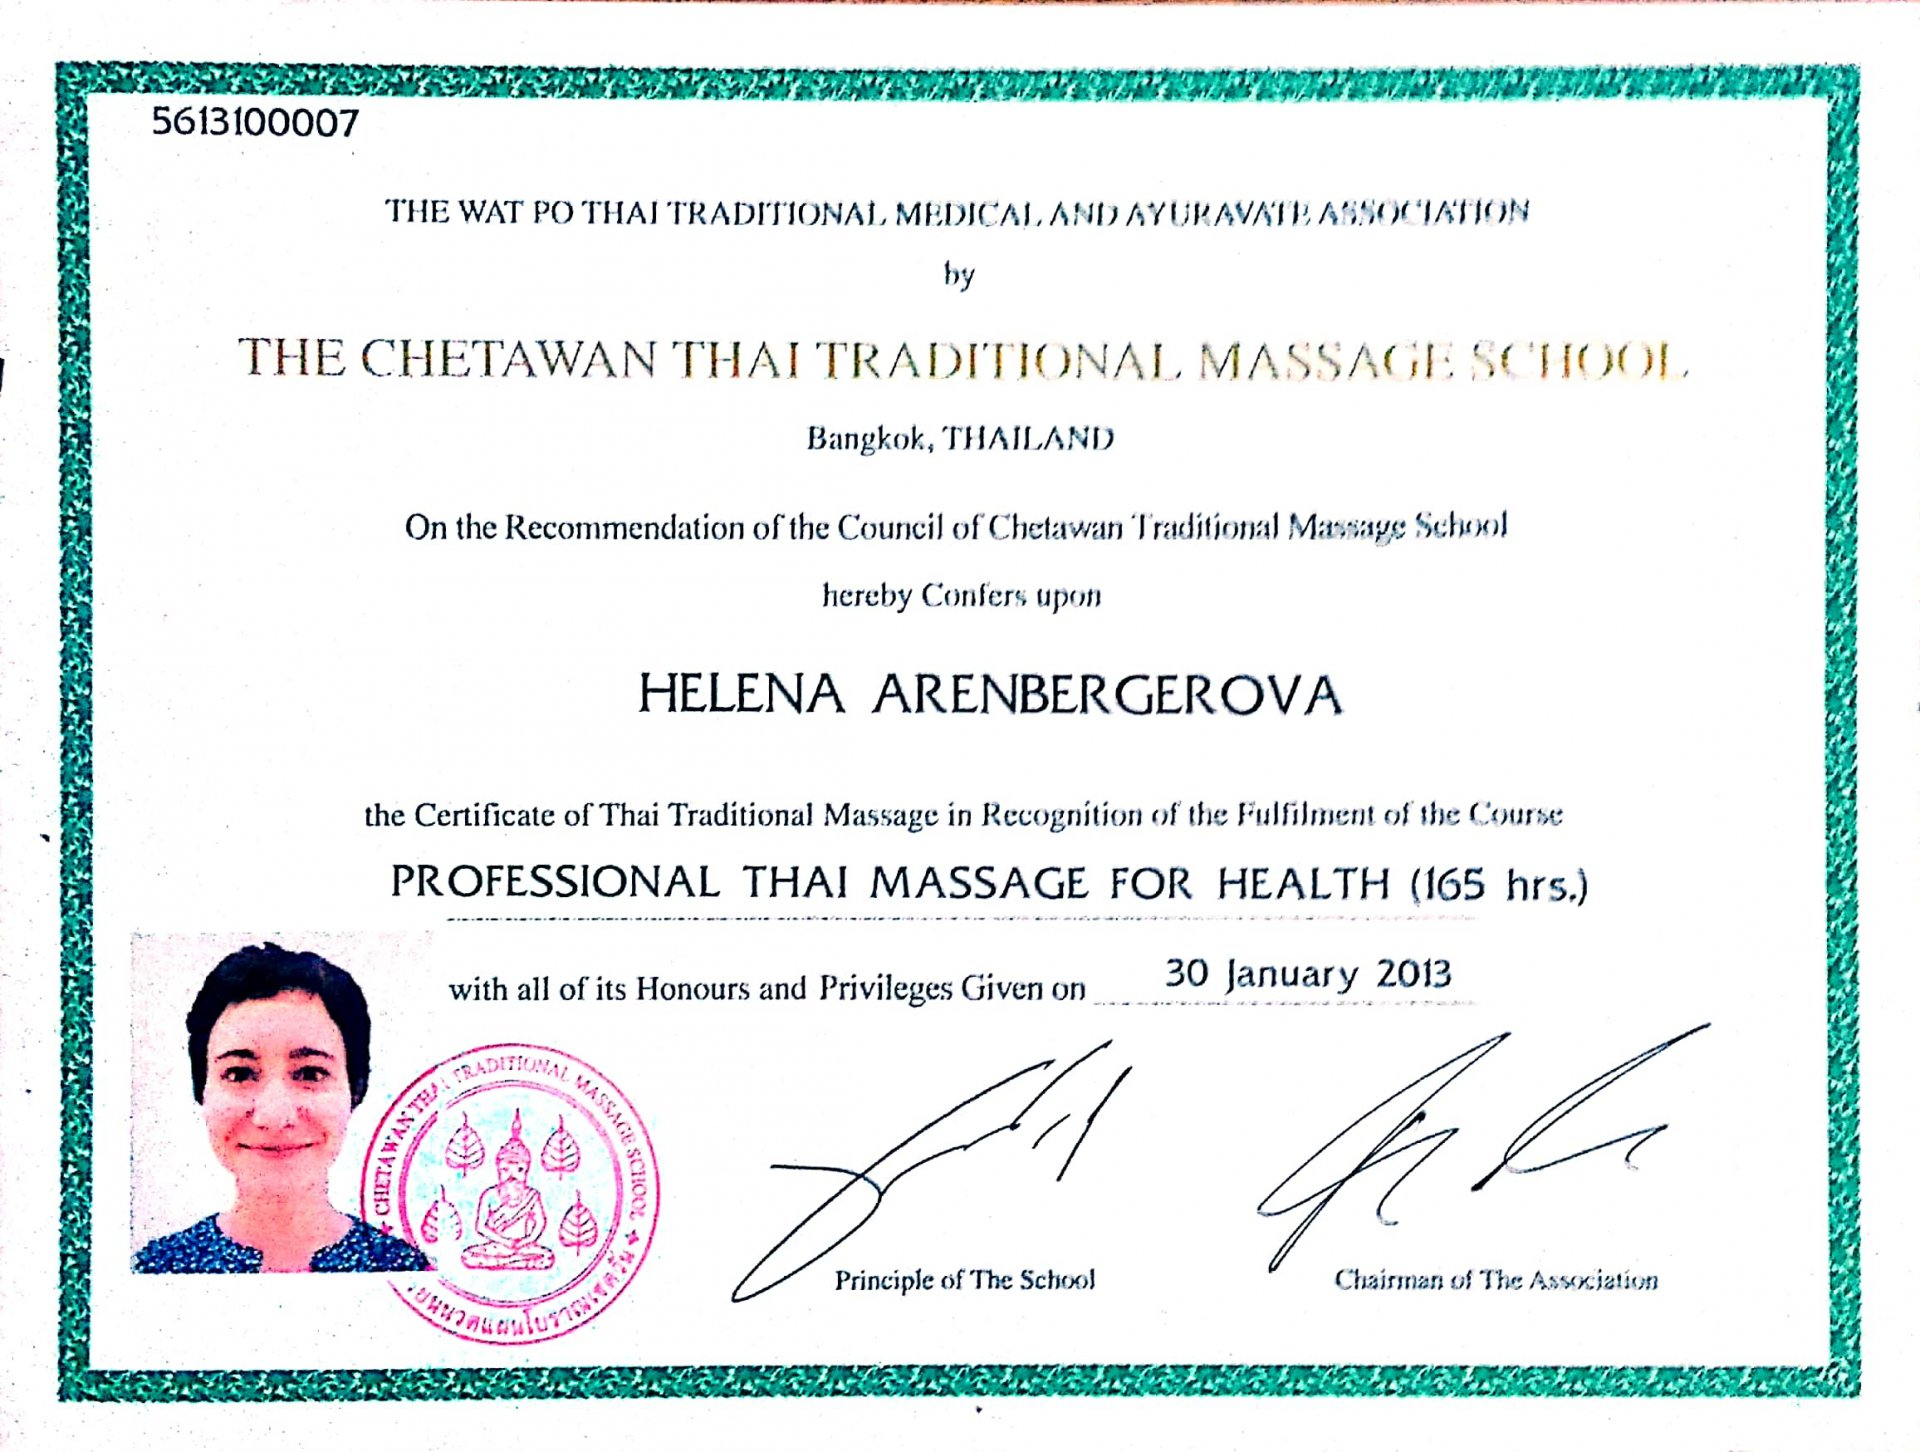 professional-thai-massage.jpg